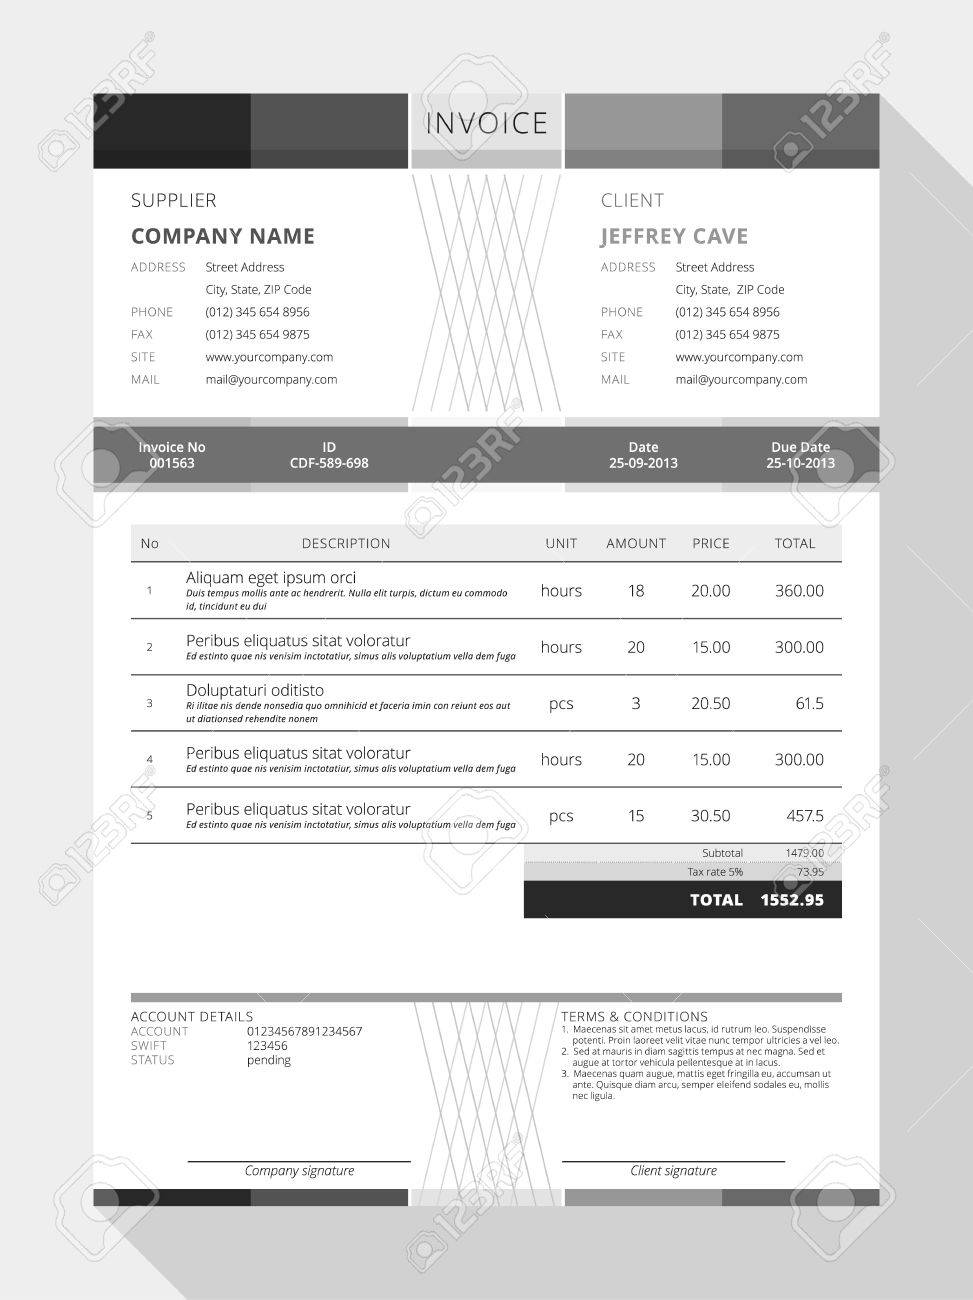 Coolmathgamesus  Splendid Design An Invoice  Professional Graphic Design Invoice  With Fetching Vector Customizable Invoice Form Template Design Vector   Design An Invoice With Astounding Service Invoices Templates Free Also Quotes And Invoices In Addition Invoice Master And Celtic Invoice Discounting As Well As Invoice Management Process Additionally Simple Invoice Creator From Happytomco With Coolmathgamesus  Fetching Design An Invoice  Professional Graphic Design Invoice  With Astounding Vector Customizable Invoice Form Template Design Vector   Design An Invoice And Splendid Service Invoices Templates Free Also Quotes And Invoices In Addition Invoice Master From Happytomco